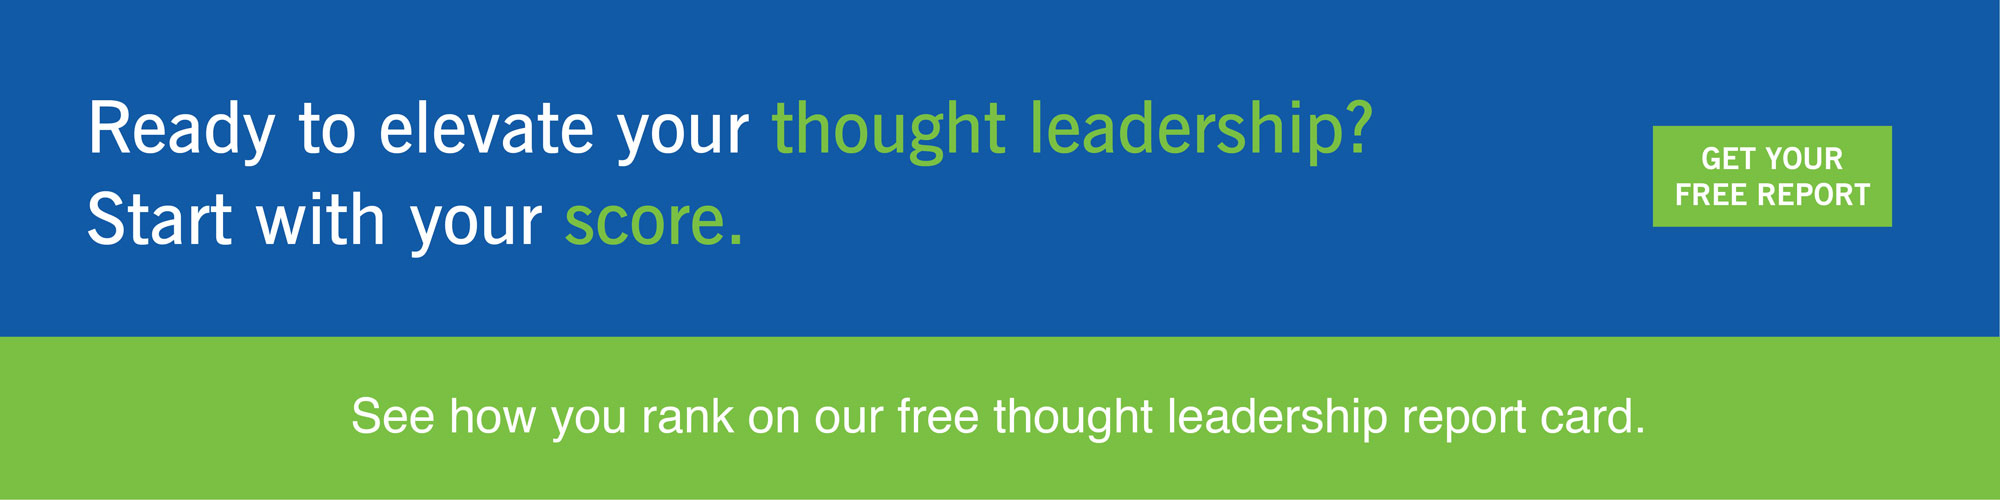 Get Your Free Thought Leadership Report Card